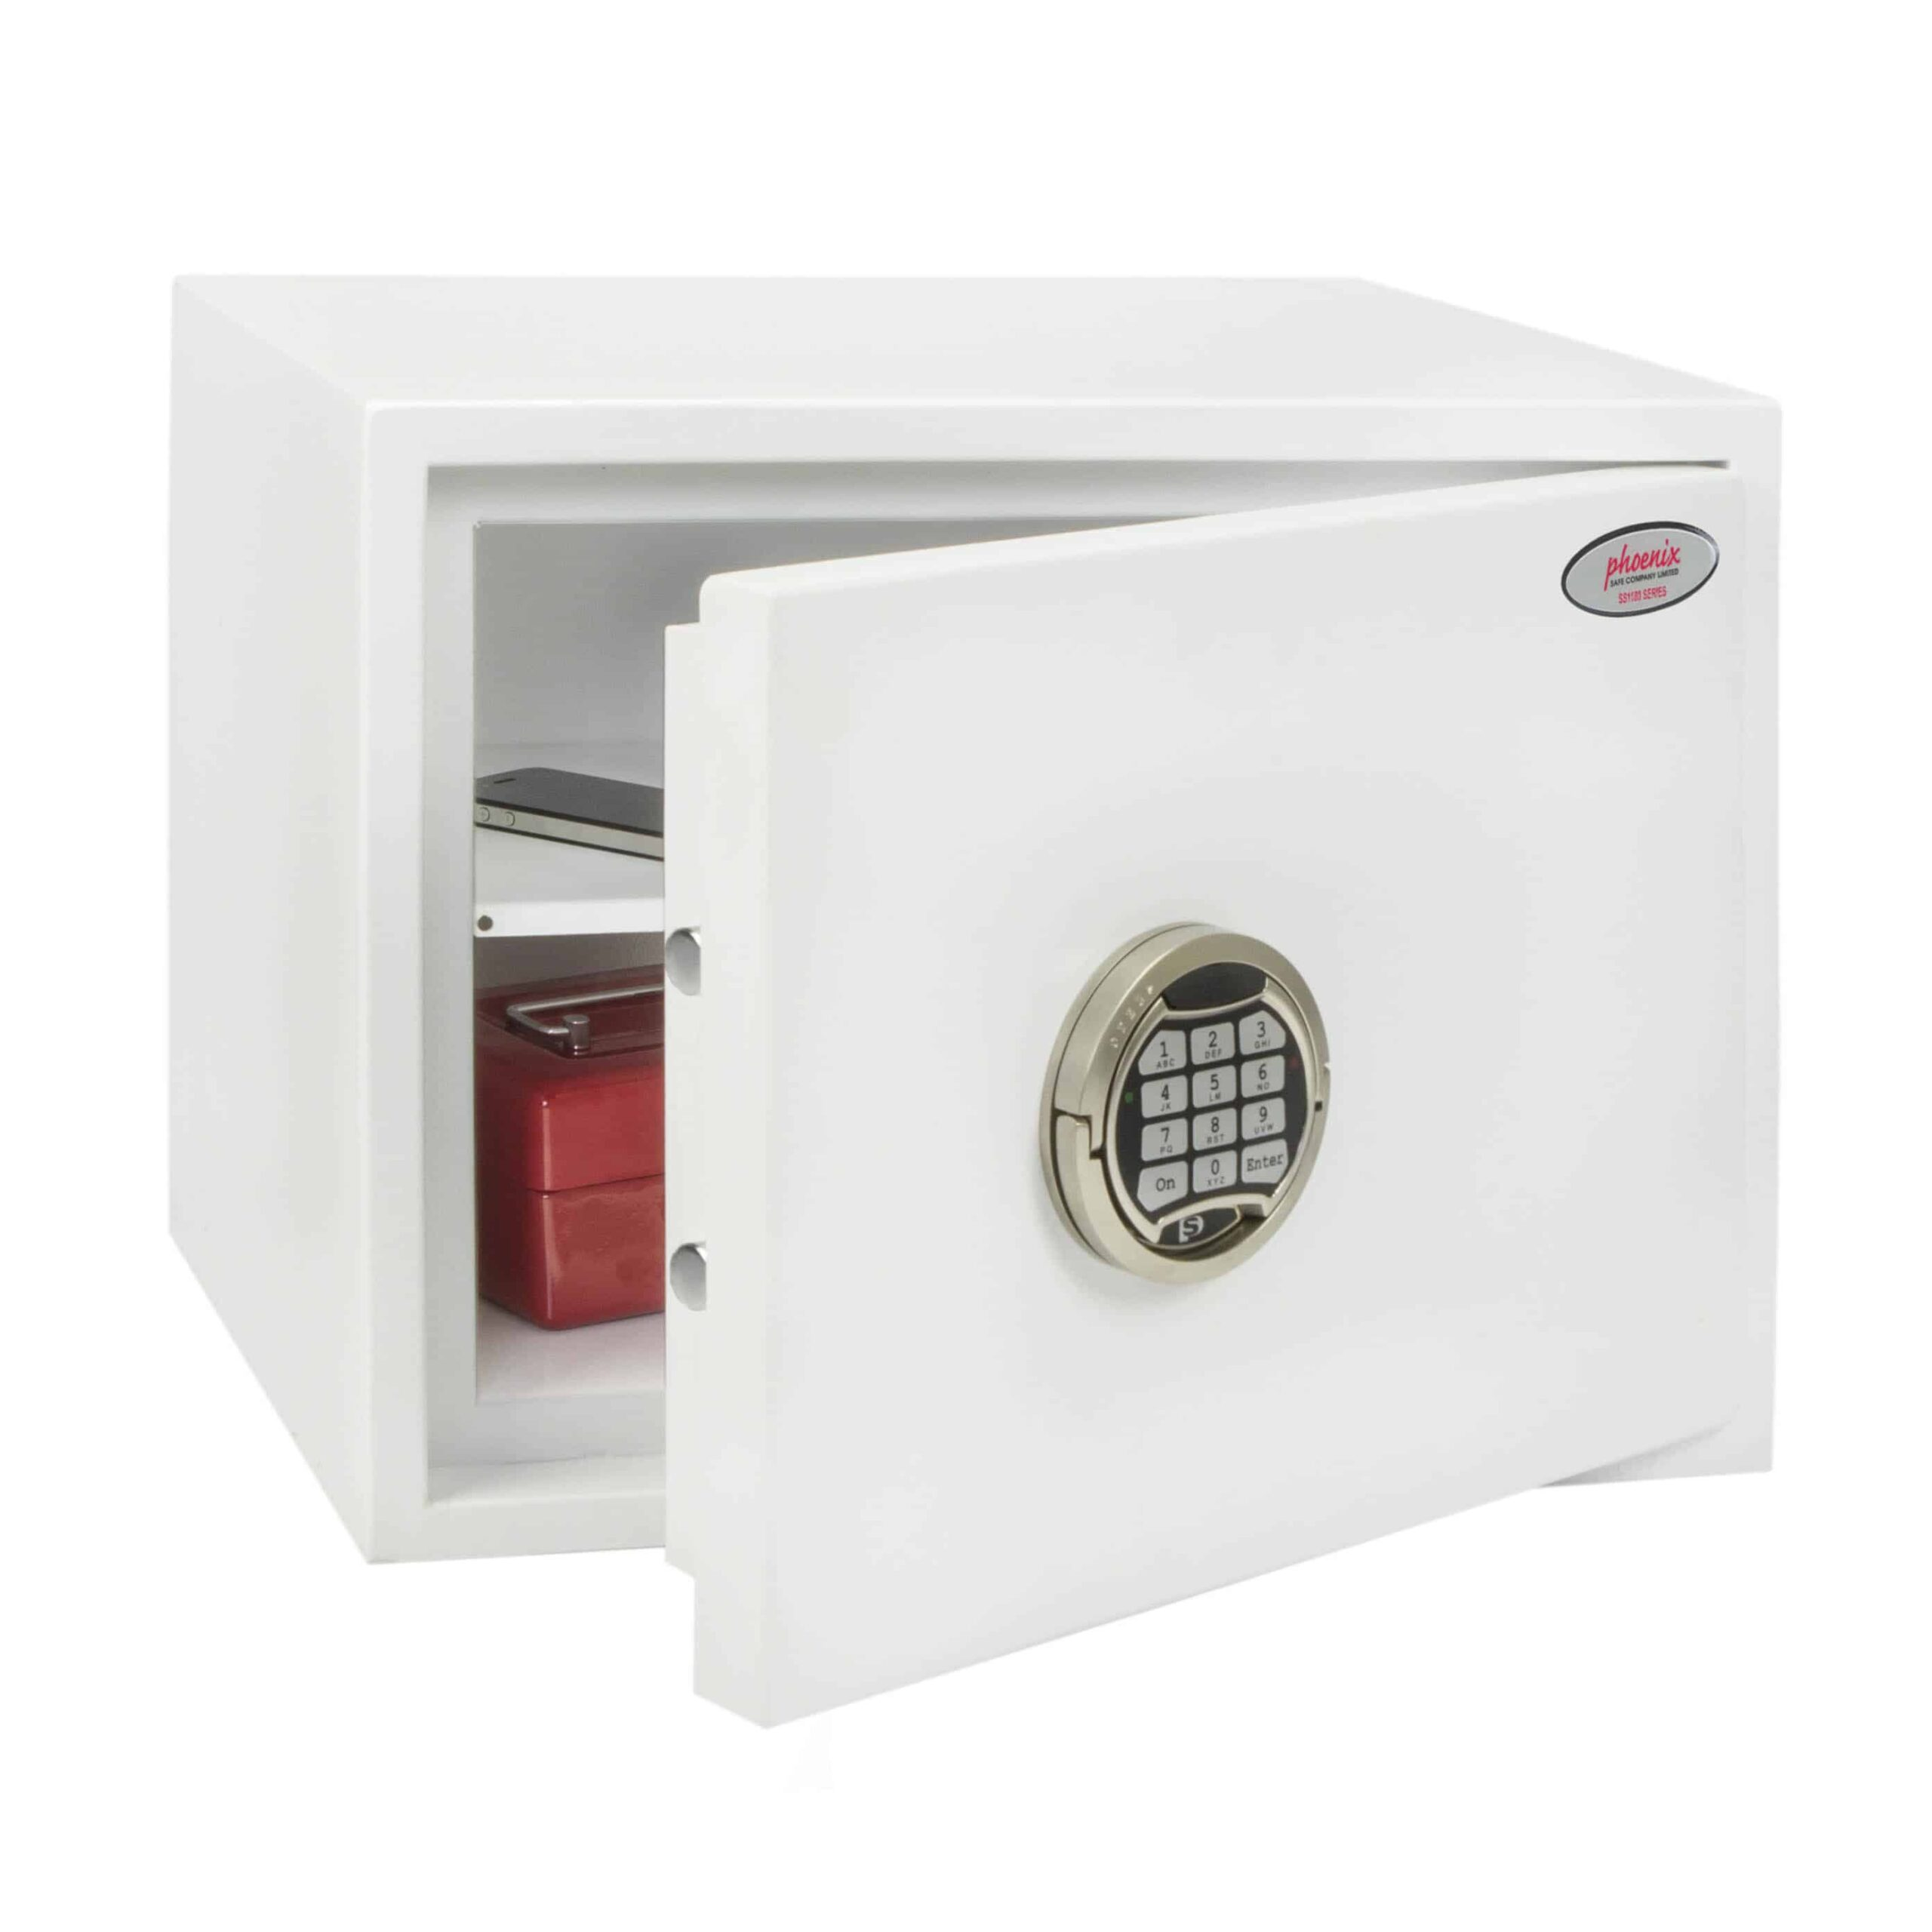 Phoenix Fortress SS1182 Size 2 Security Safe